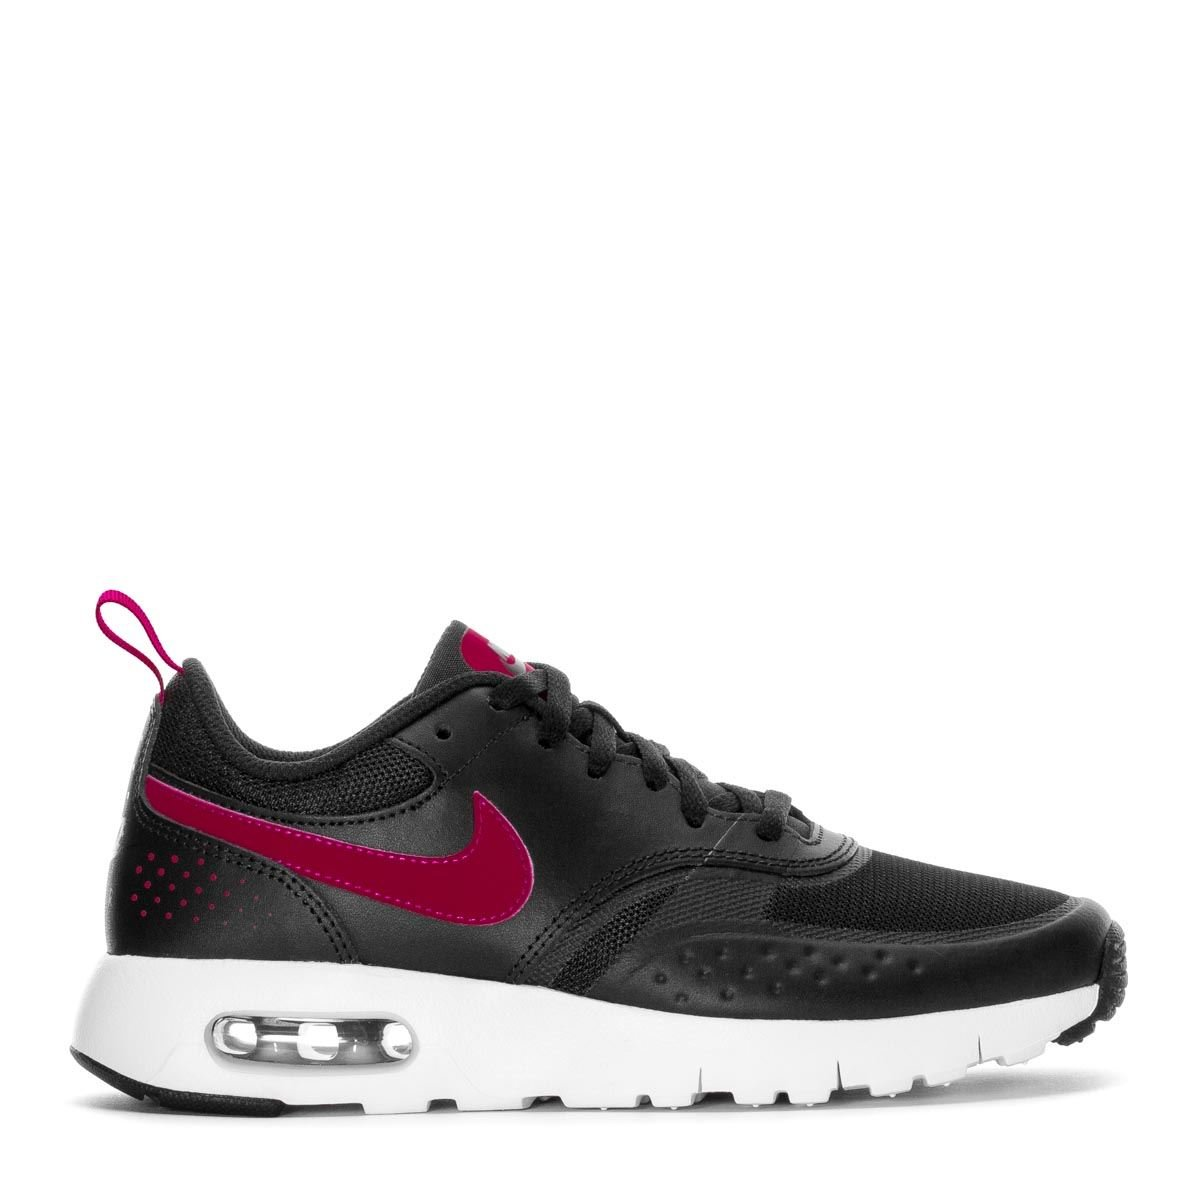 new products 77a3c 05b20 Nike Women s Air Max Vision (gs) Competition Running Shoes (Black Rush Pink  001), 6 UK  Amazon.co.uk  Shoes   Bags